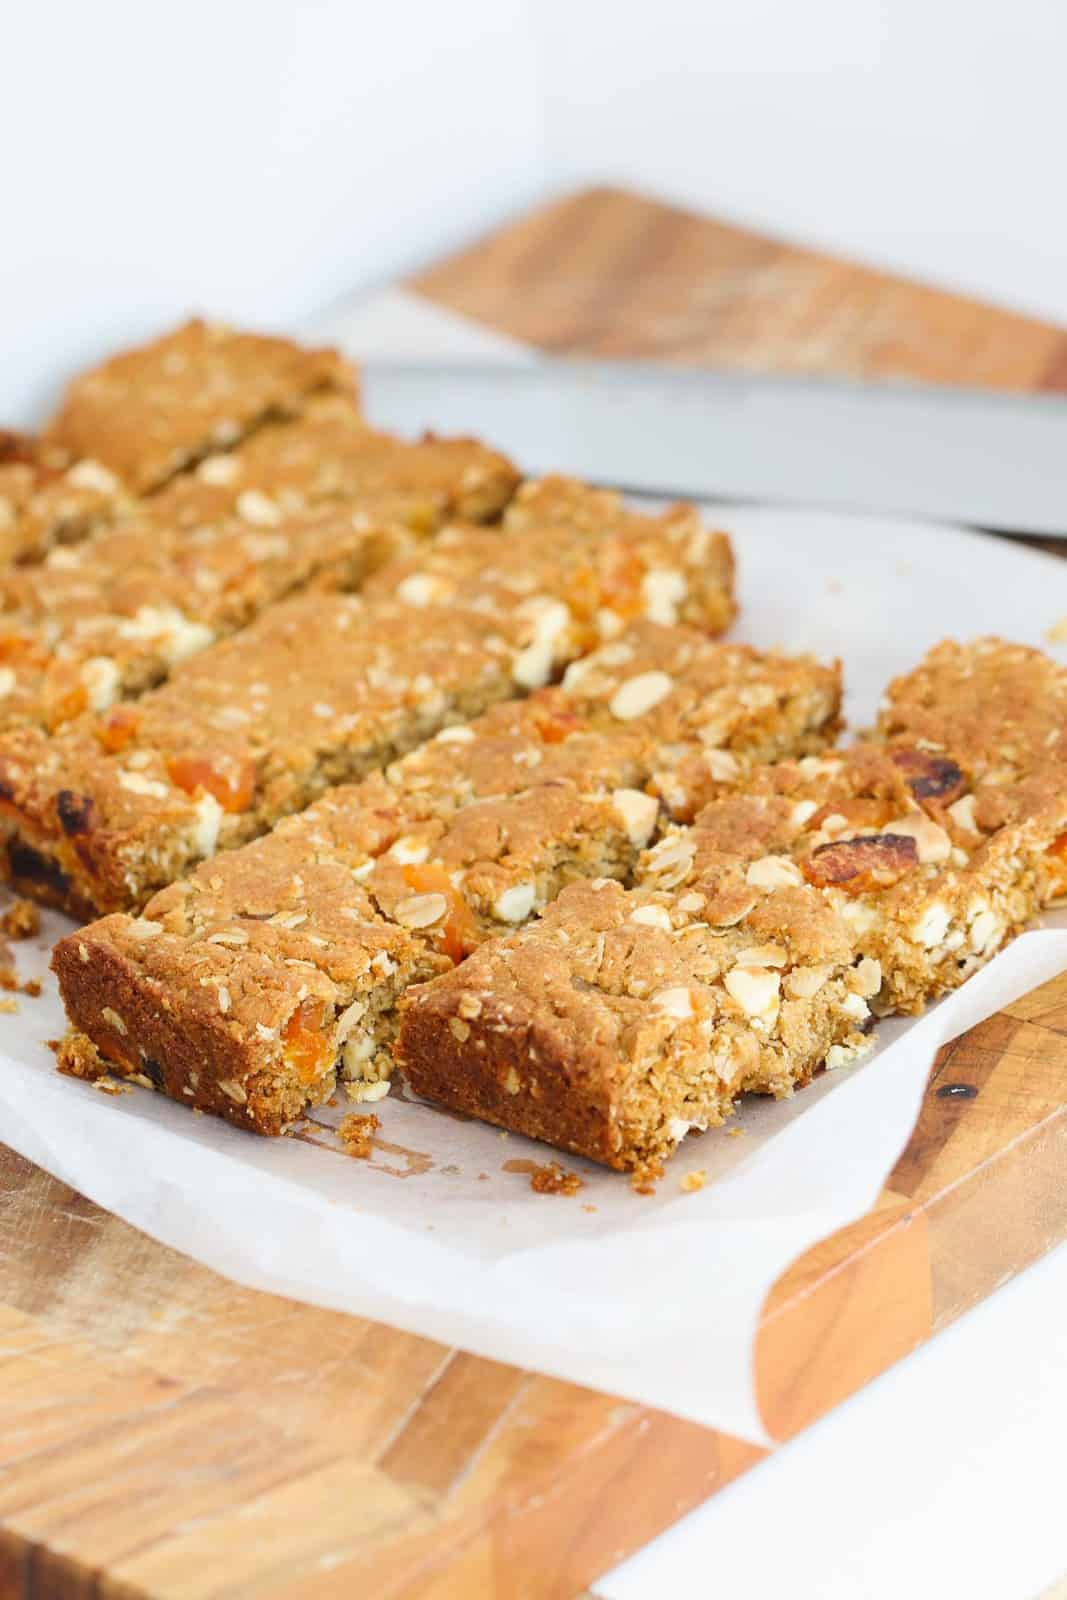 Long apricot oat slices next to each other on a piece of parchment paper on top of a wooden cutting board